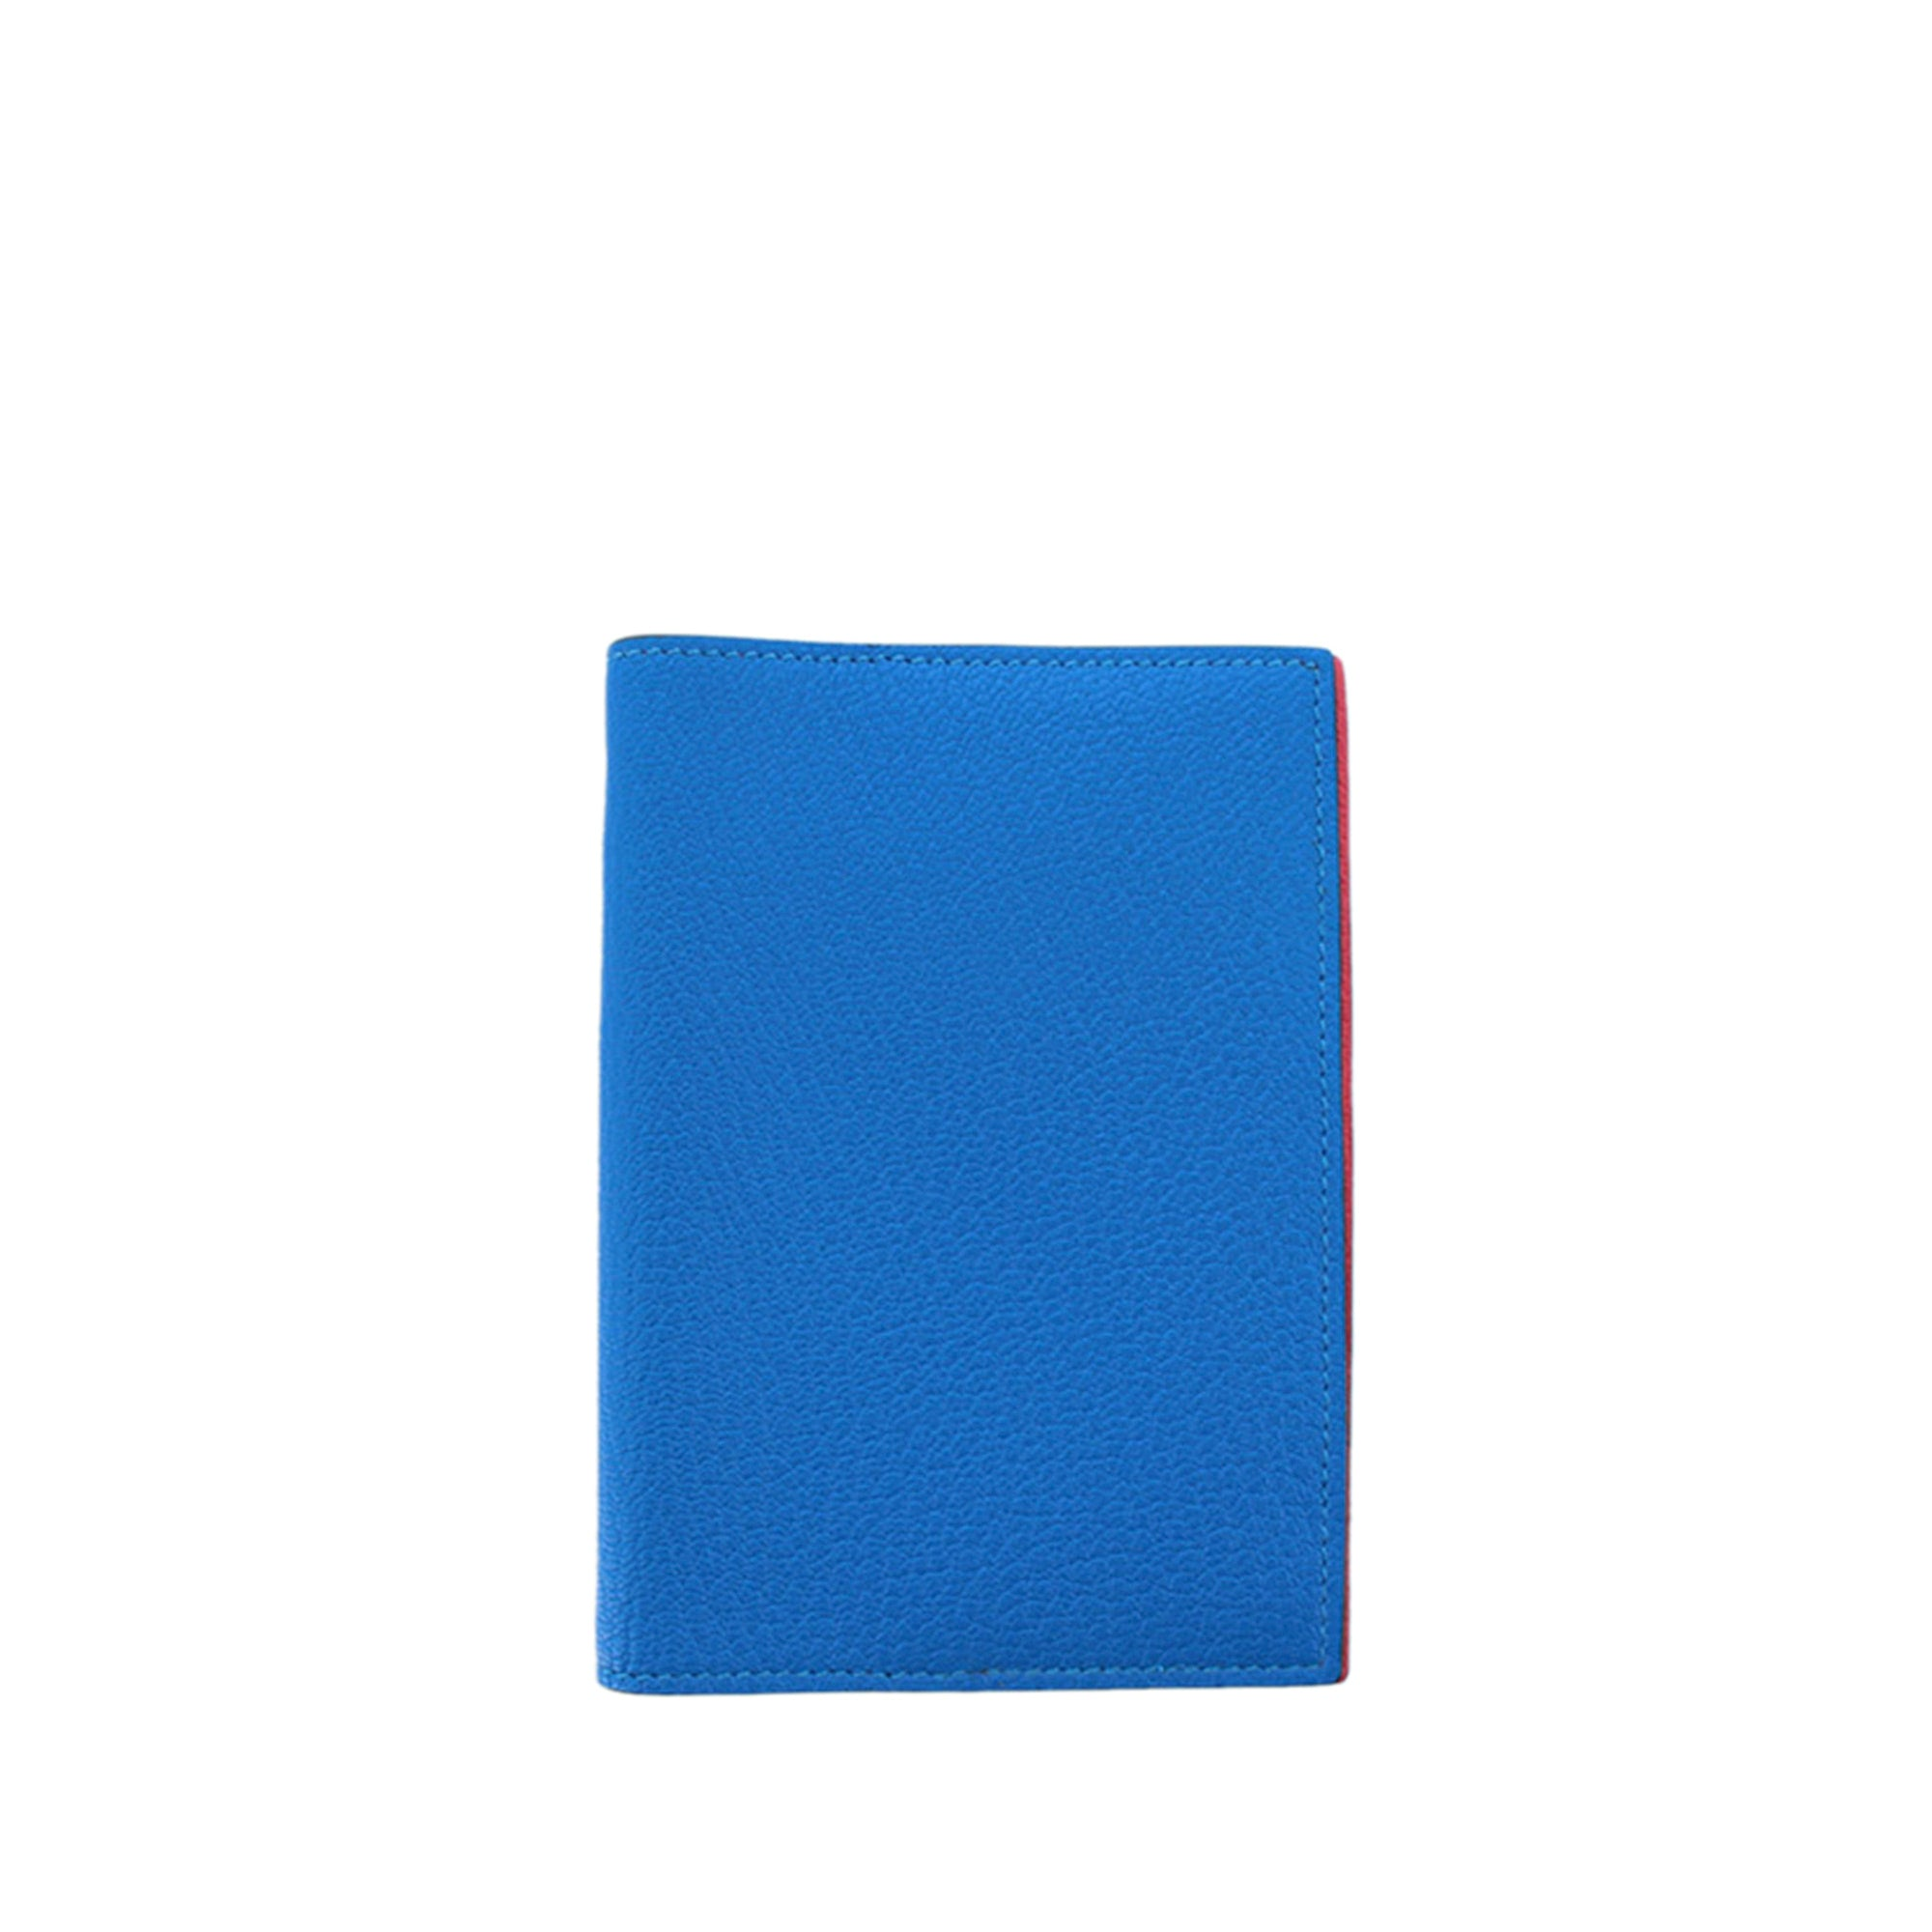 Hermes Blue Agenda PM Notebook Cover